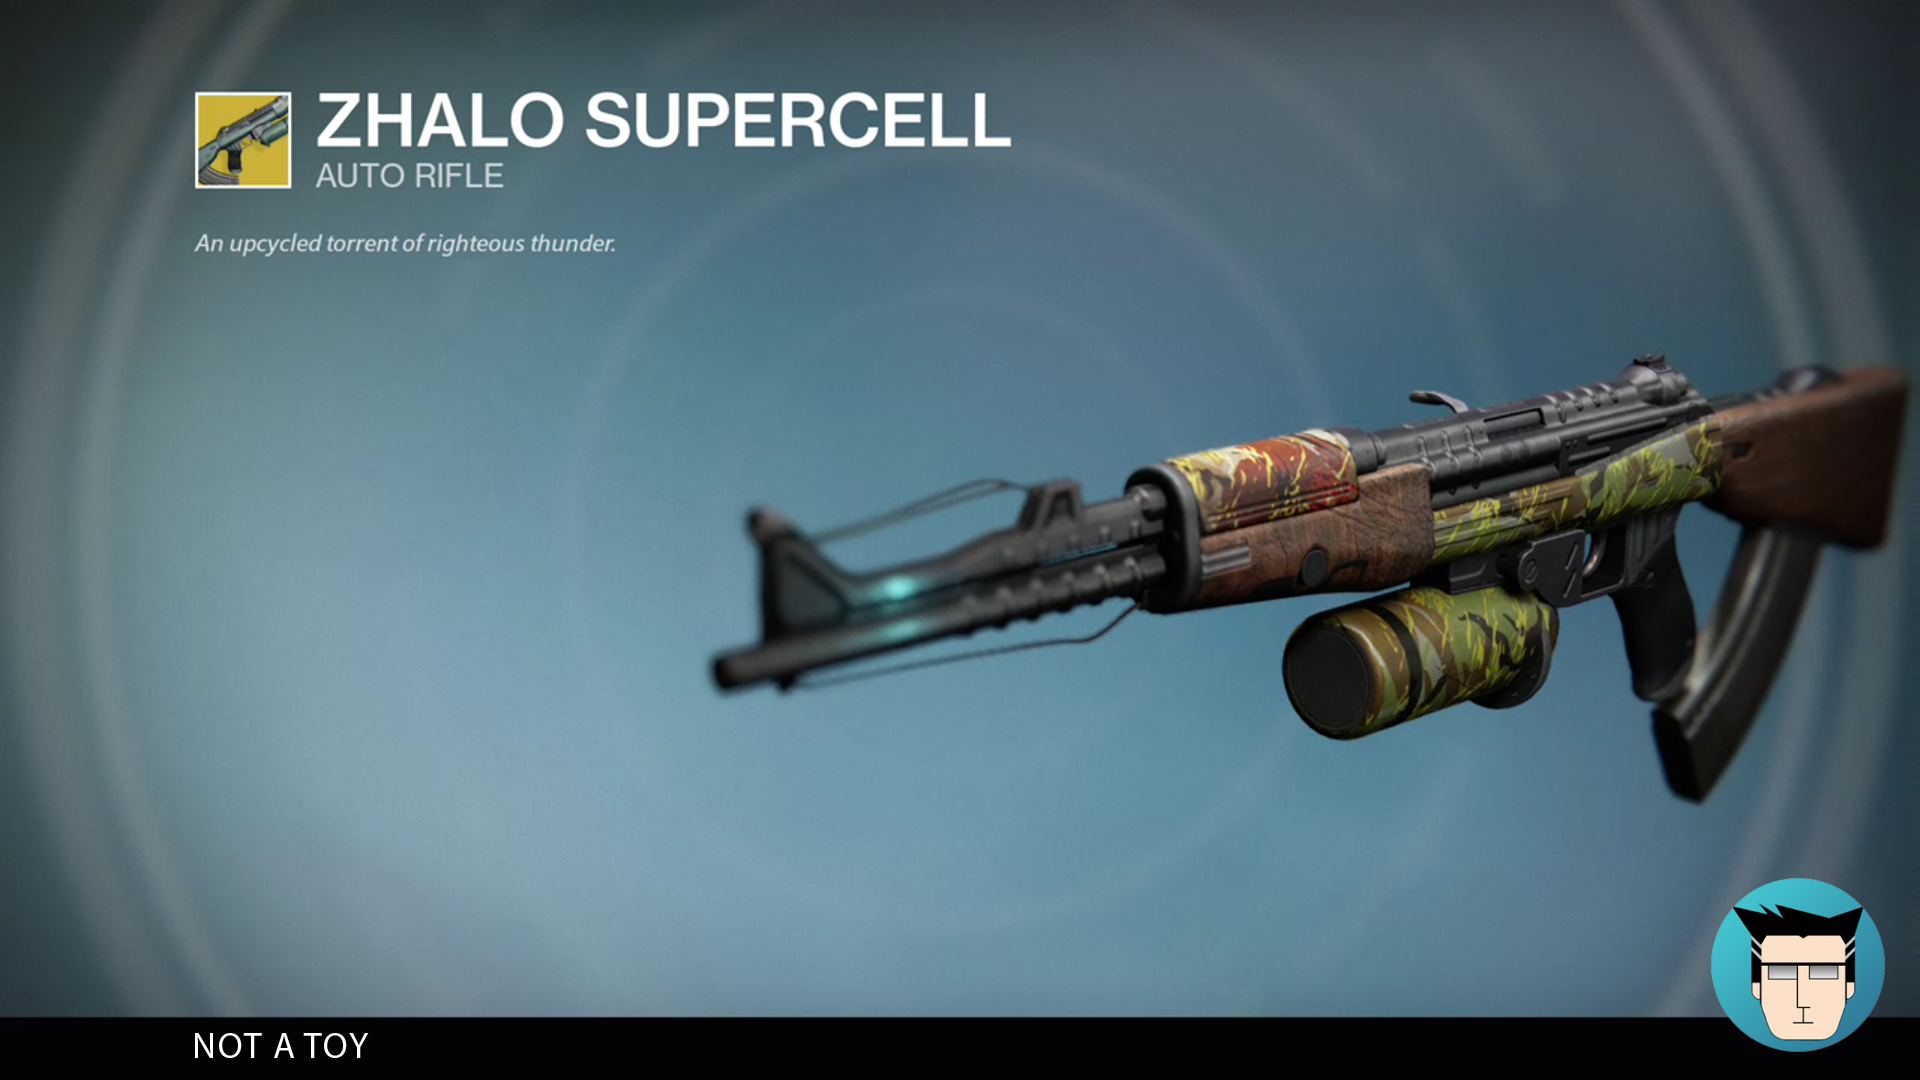 ZHALO SUPERCELL | NOT A TOY